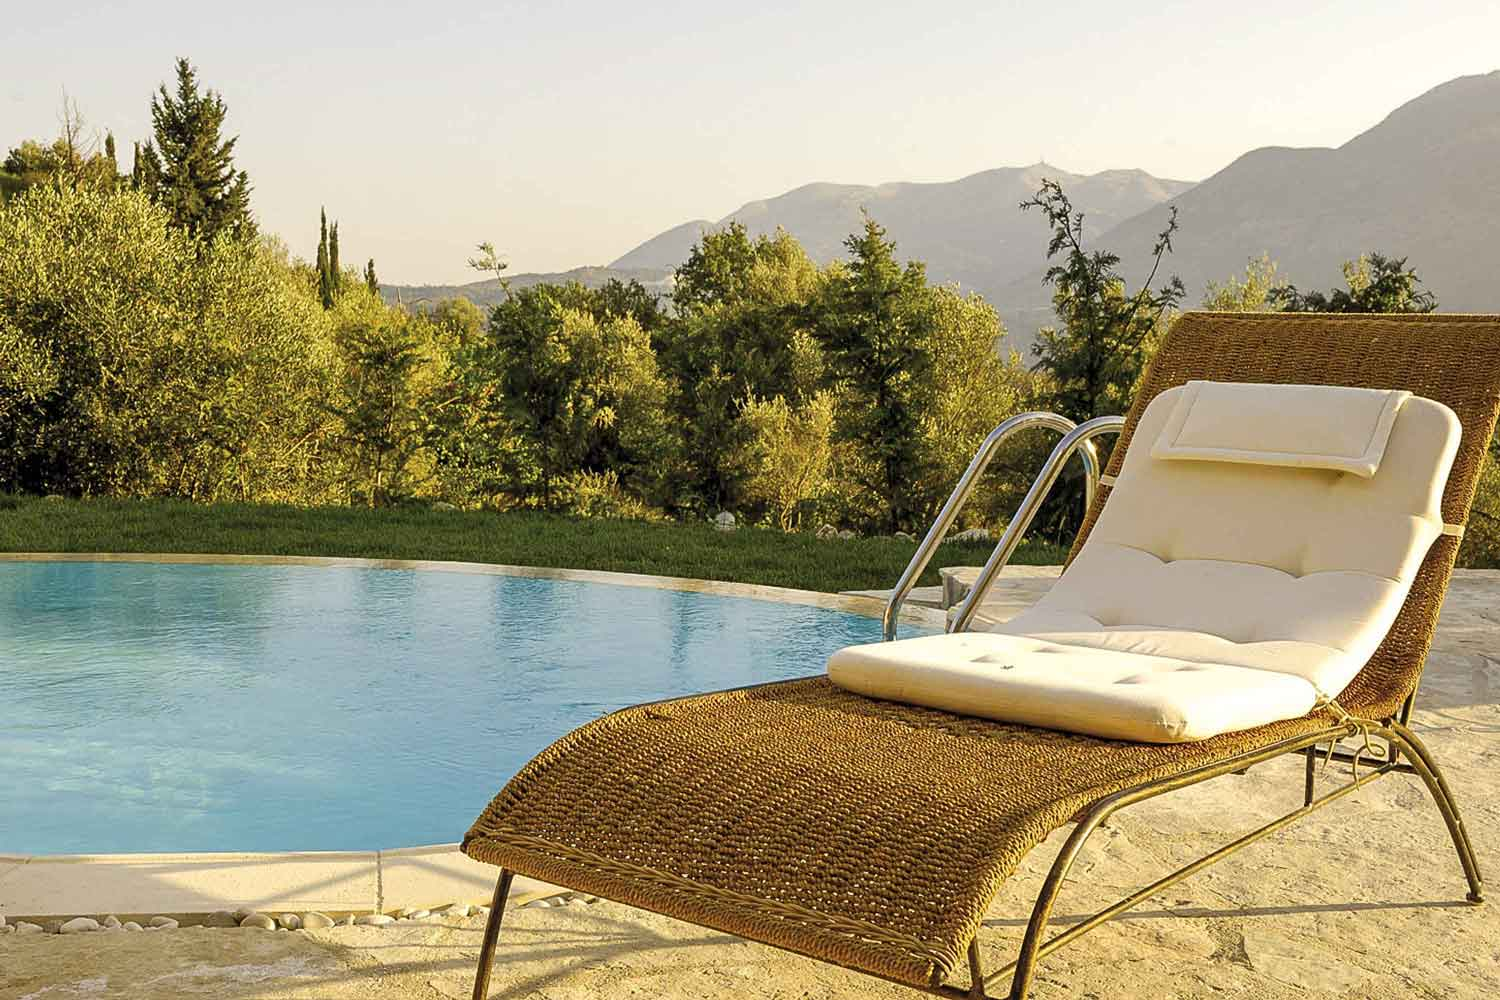 private pool villa at Ionian islands, amazing view from pool